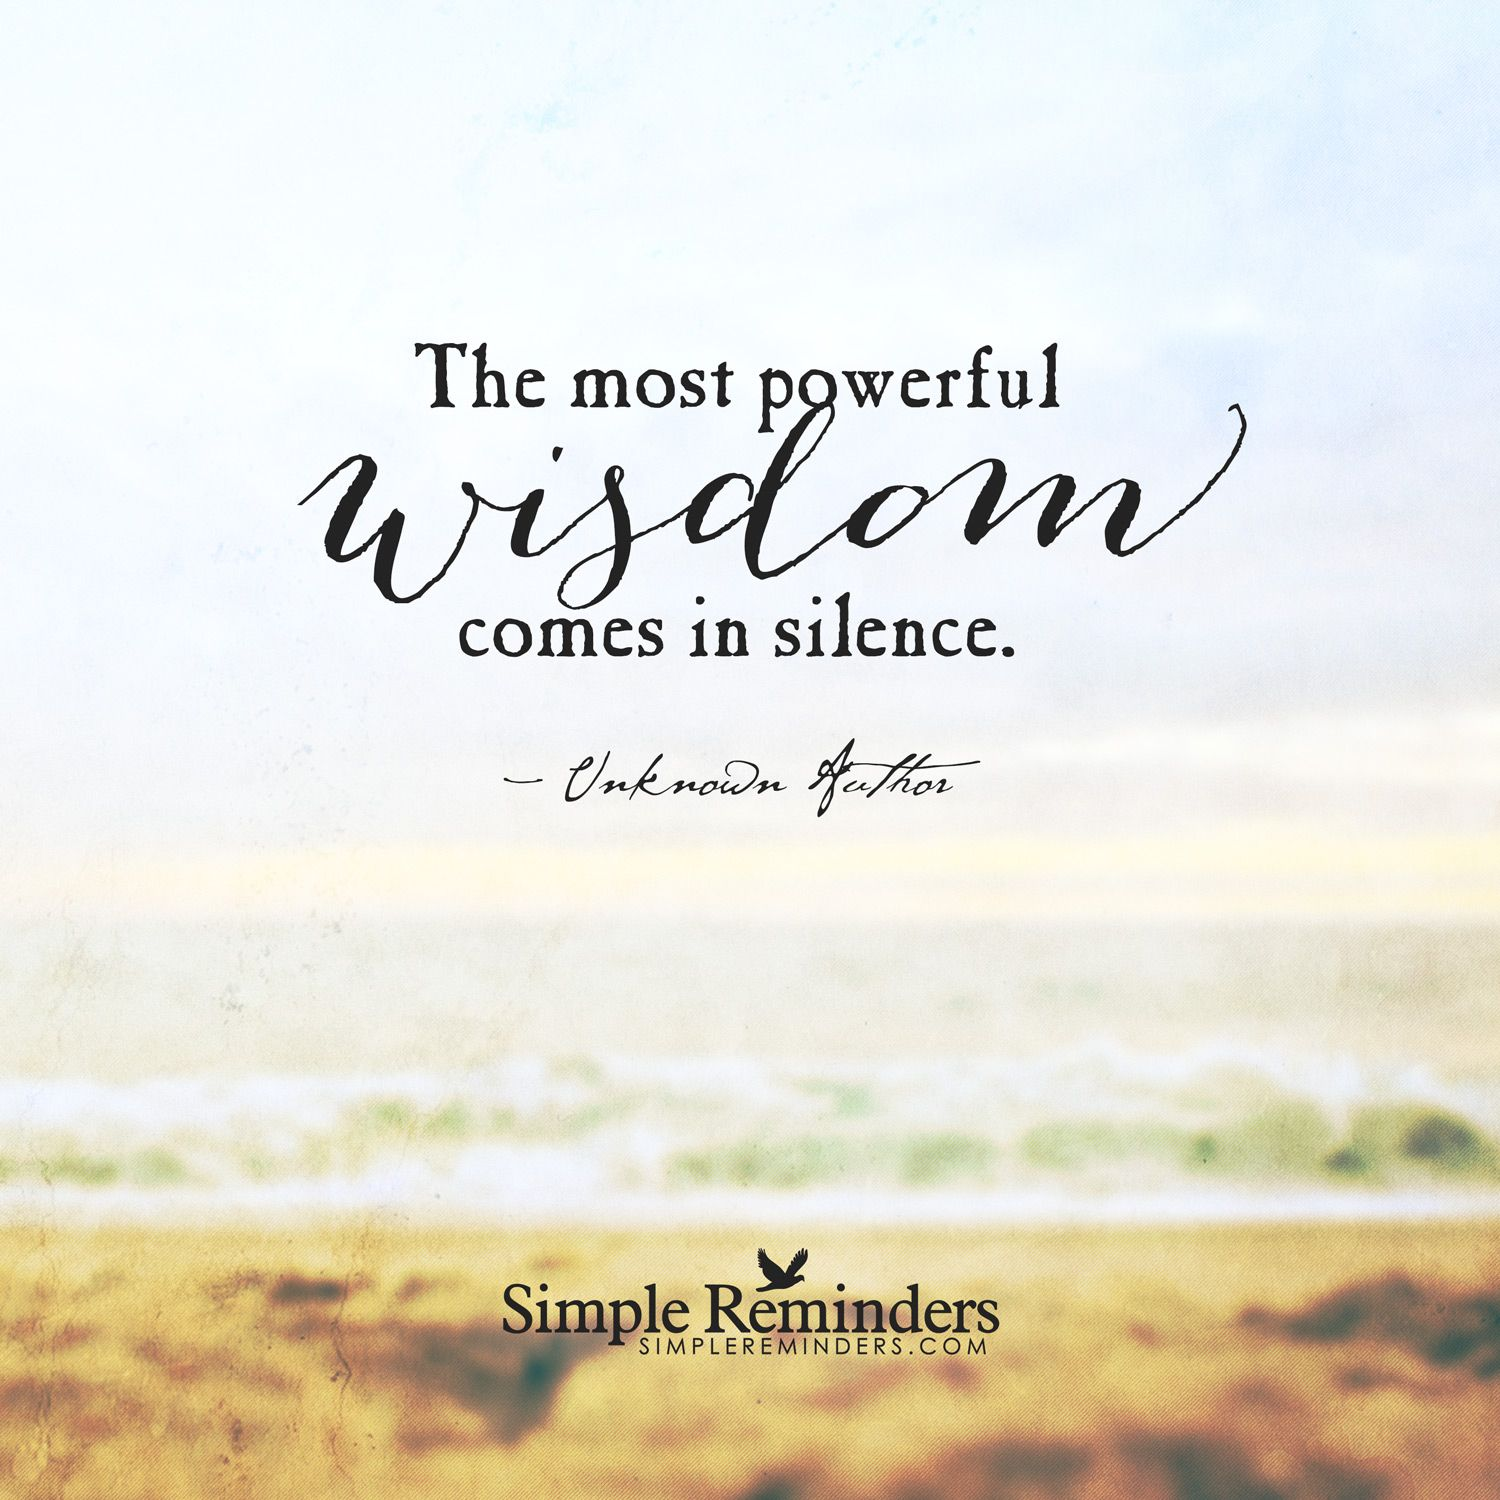 Wisdom Quotes Inspirational: The Most Powerful Wisdom Comes In Silence.